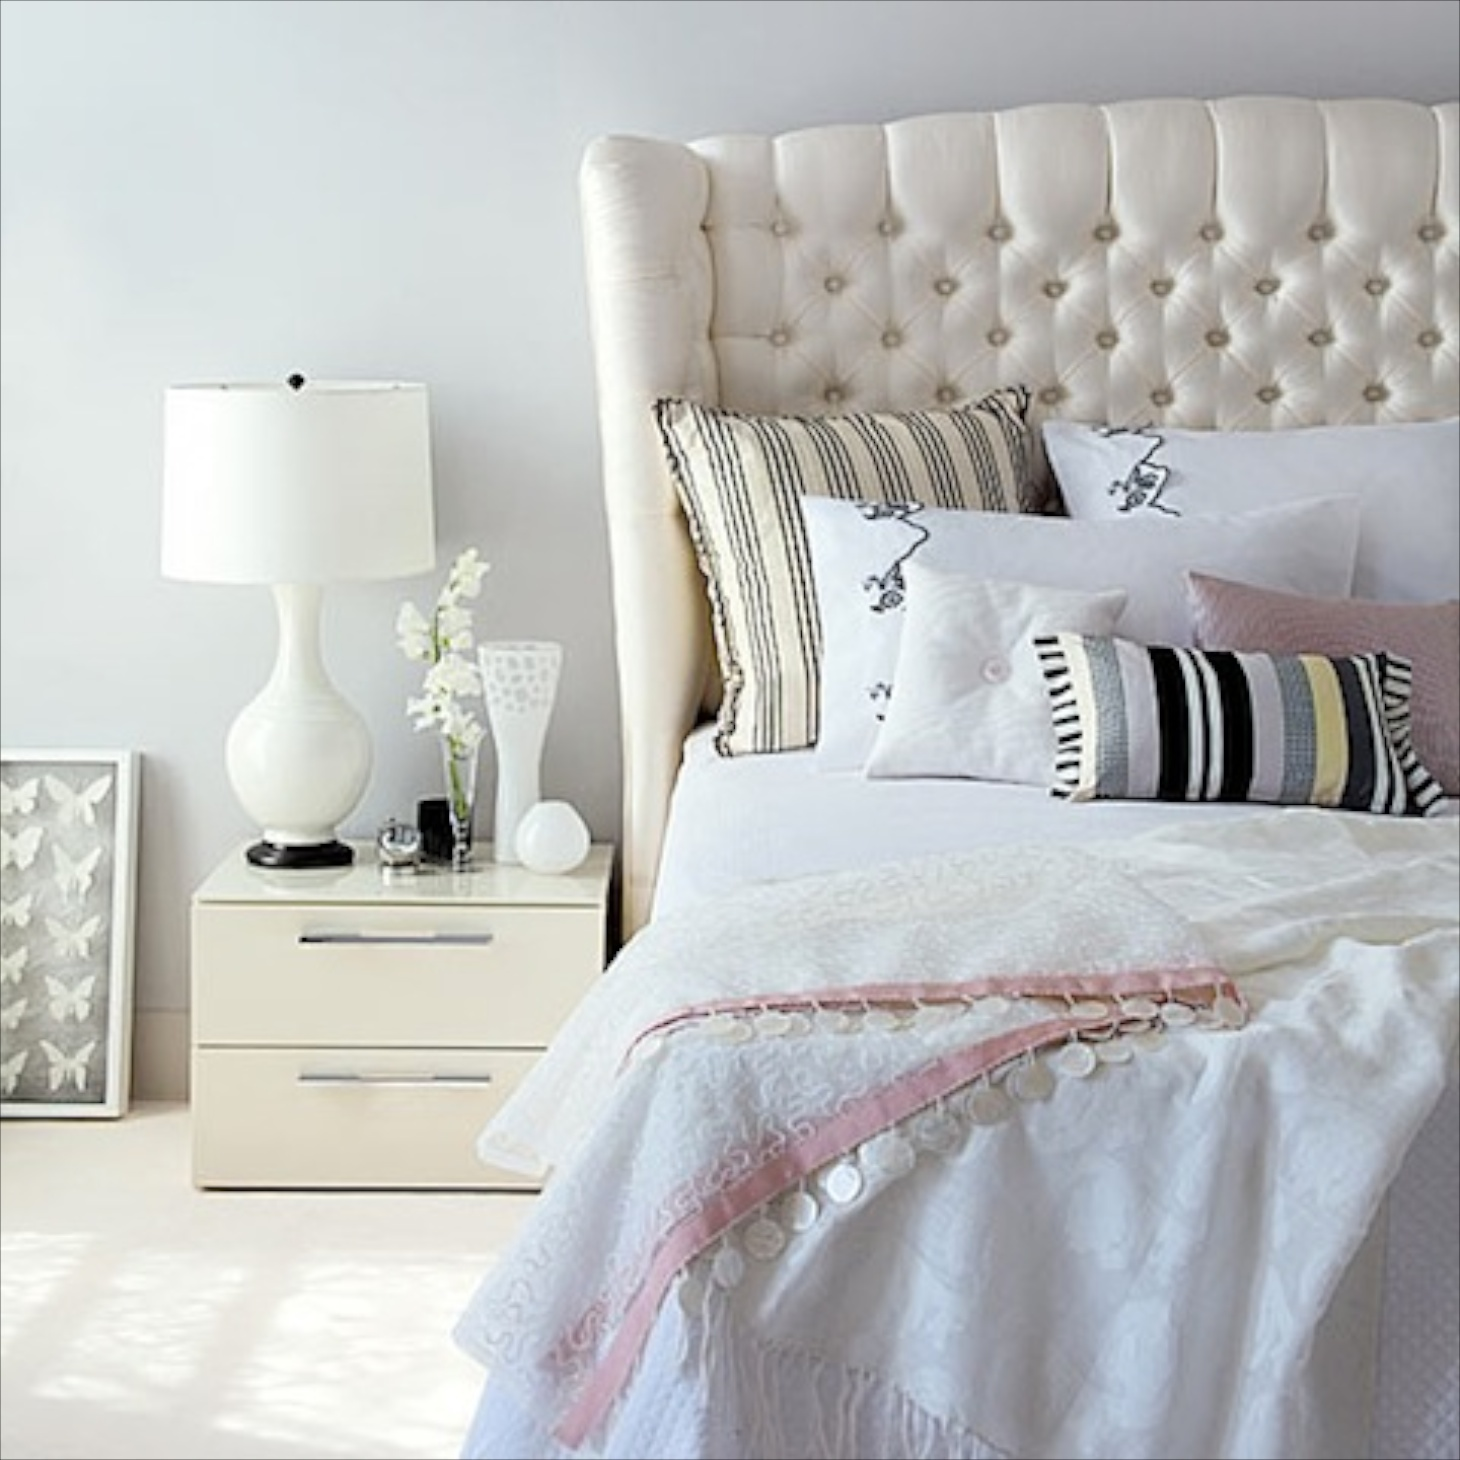 White Decoration Bedroom 18 White Color Decorating Room Ideas Bedroom Luxurious Headboard